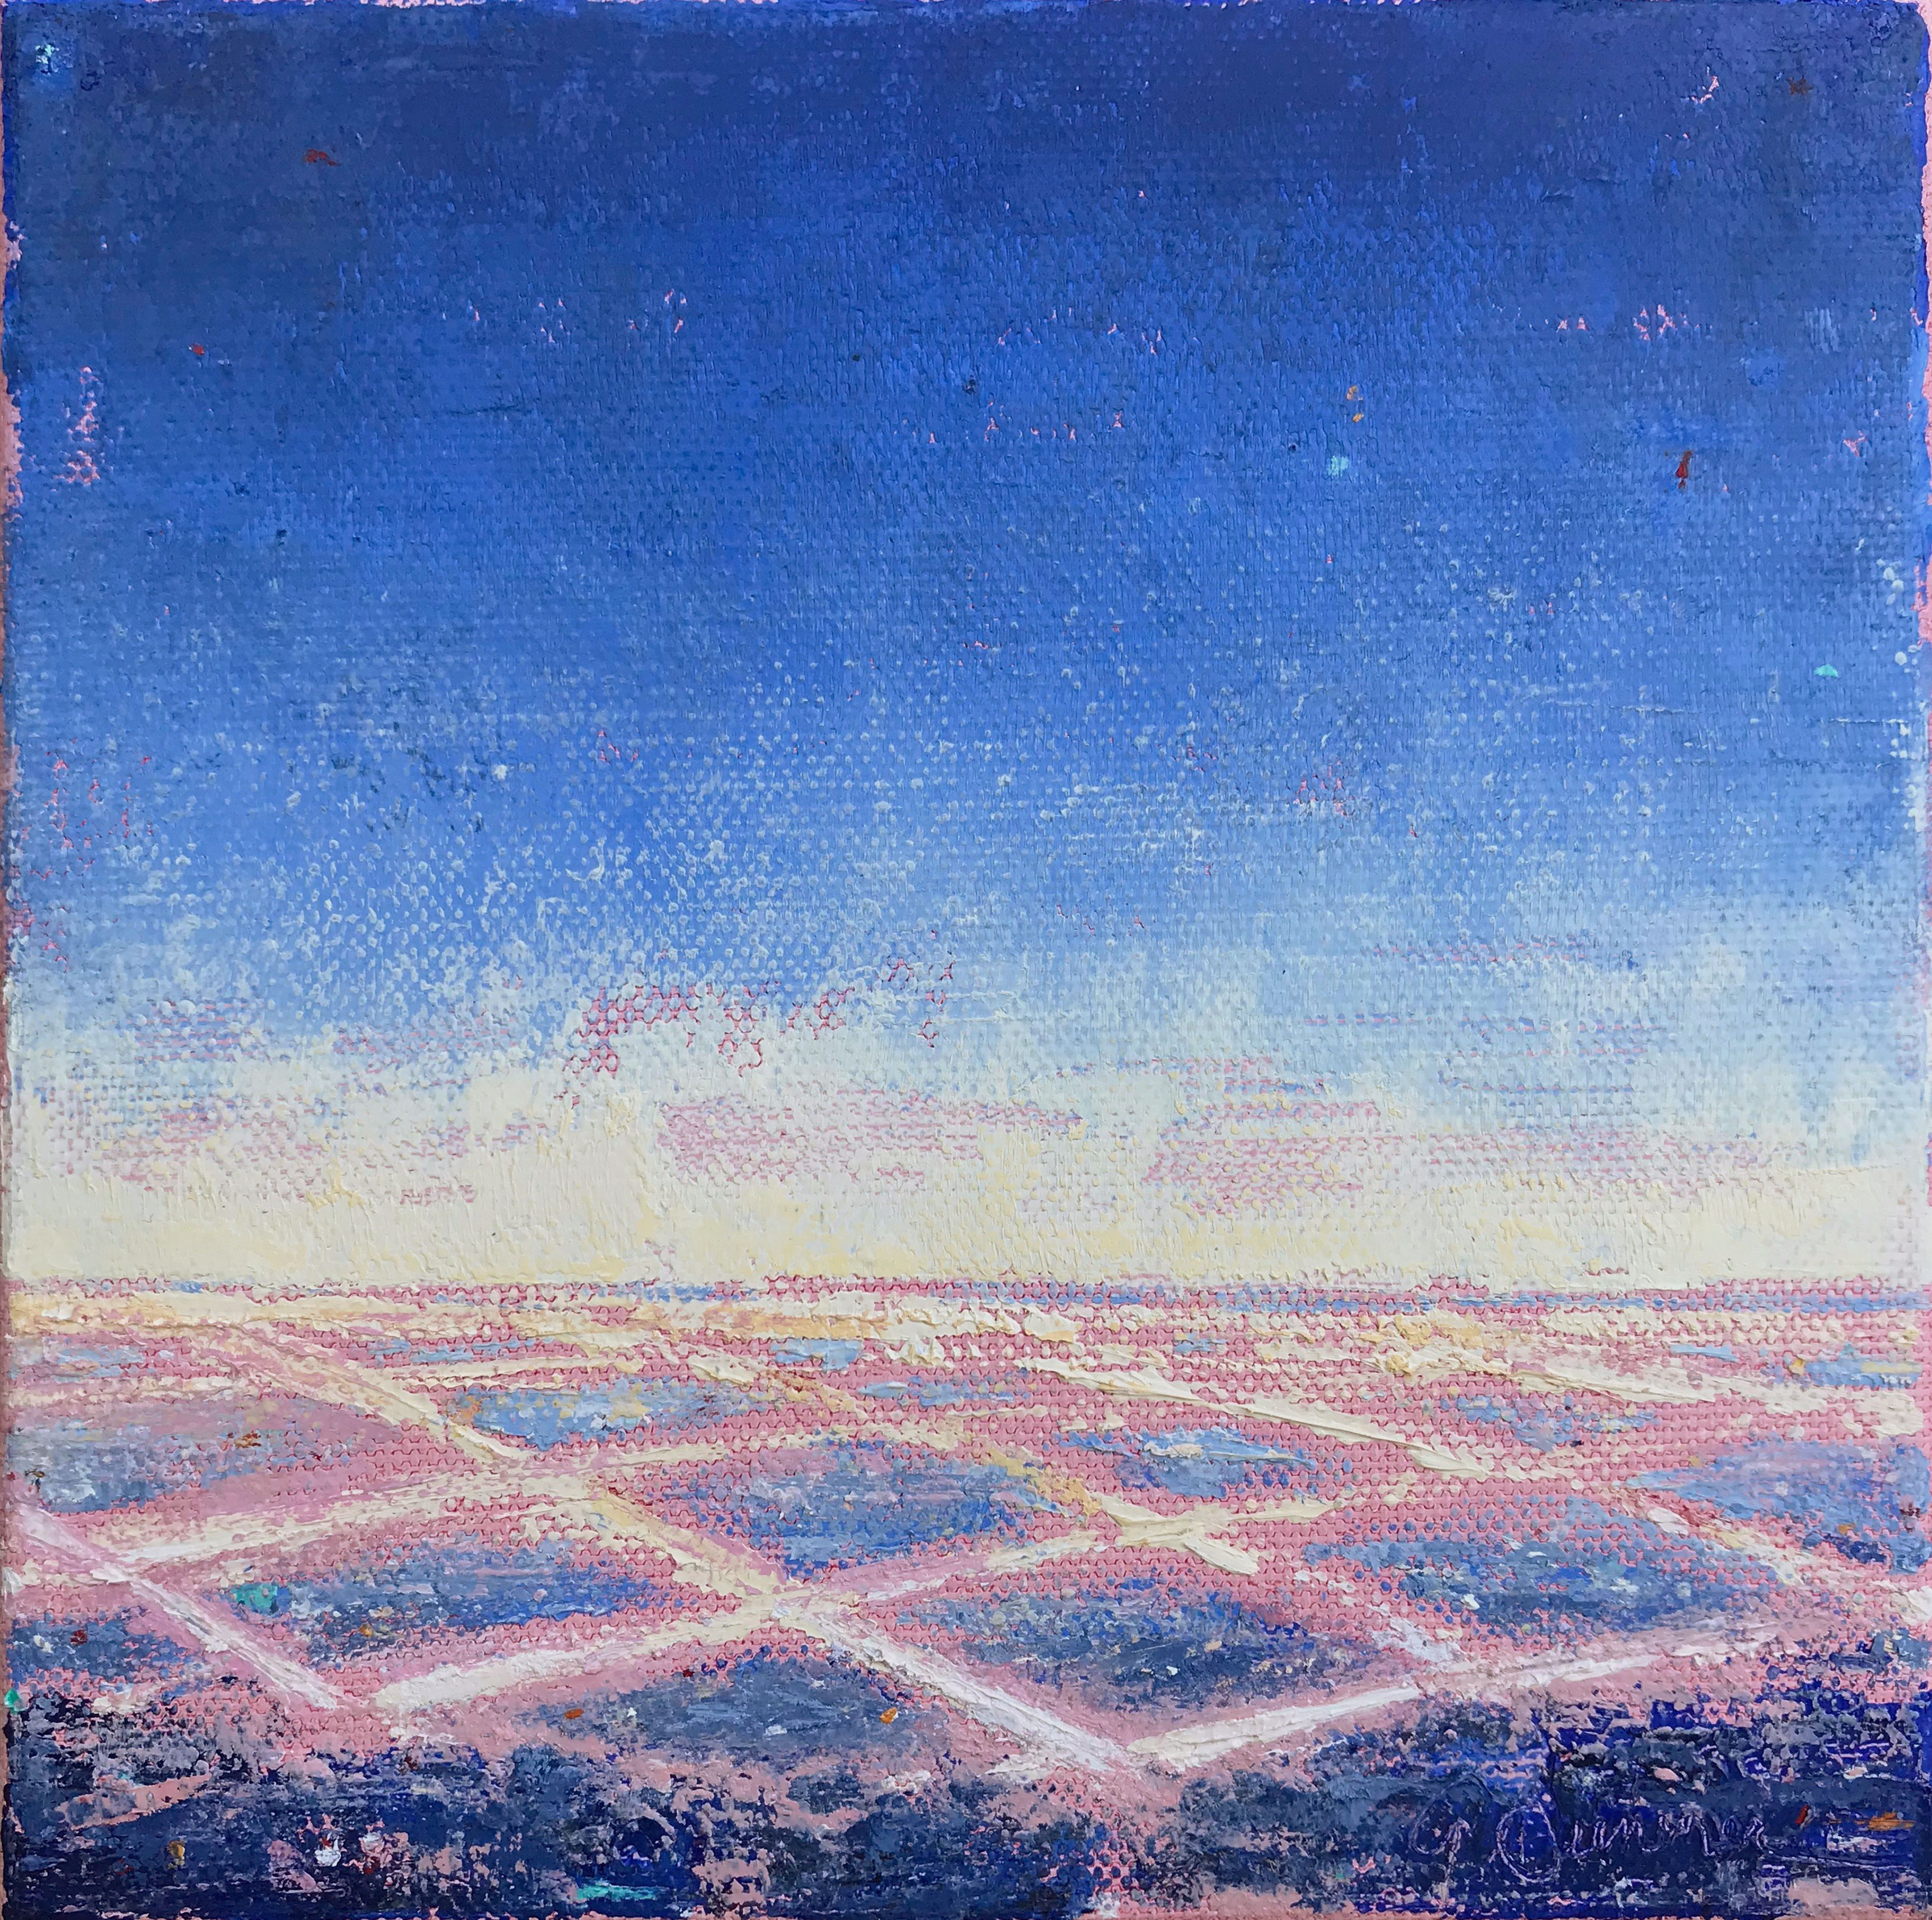 ©Gay-Summer-Rick_On-The-Grid---Blue-I_Oil-on-Canvas_6x6in_np